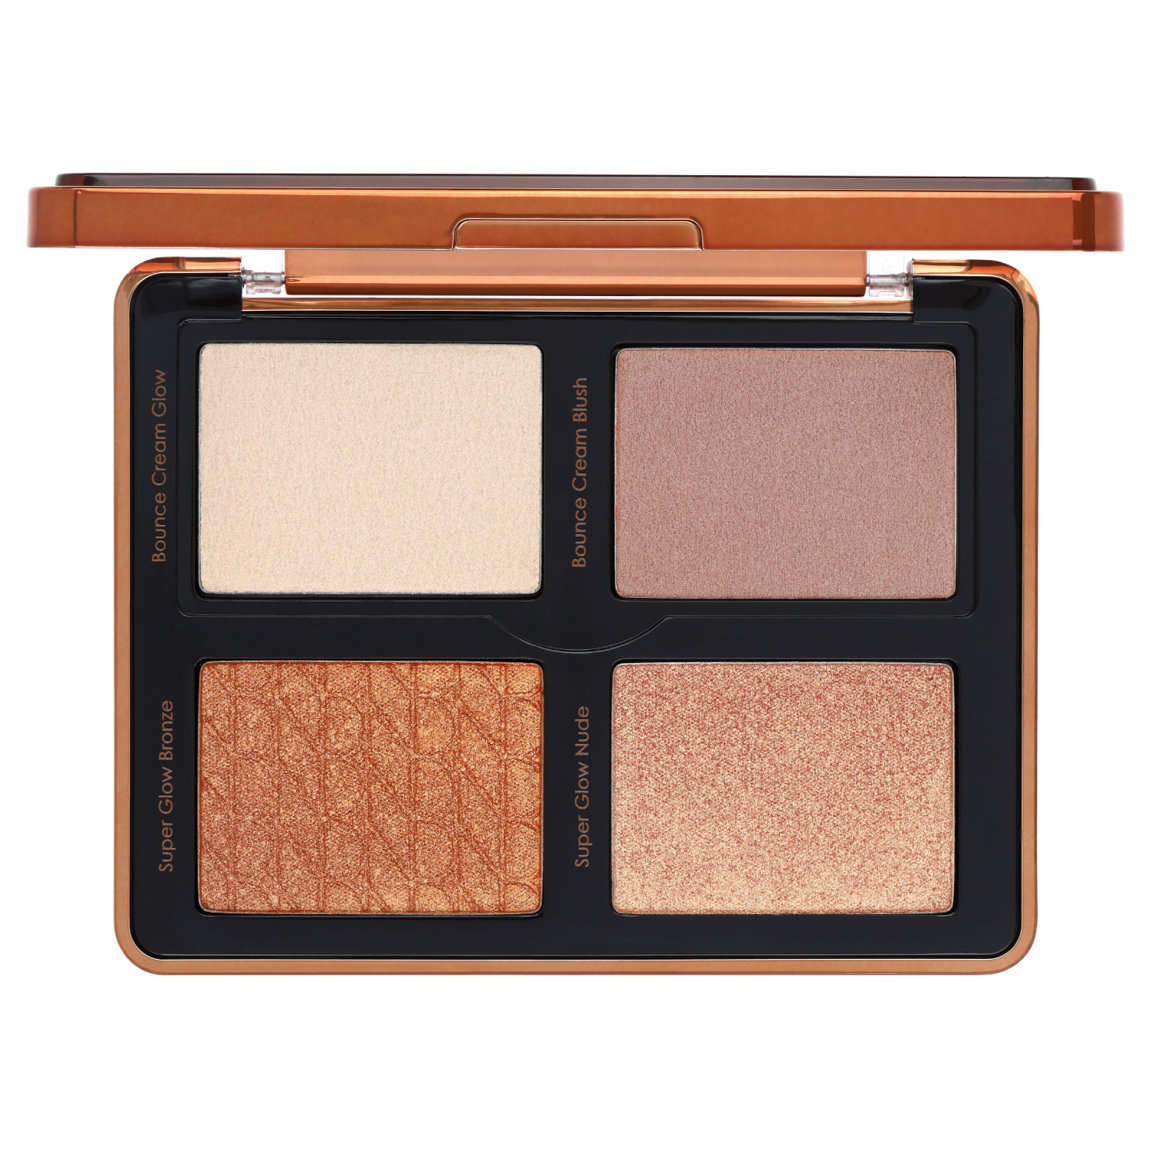 Natasha Denona Bronze Cheek Face Glow Palette product swatch.